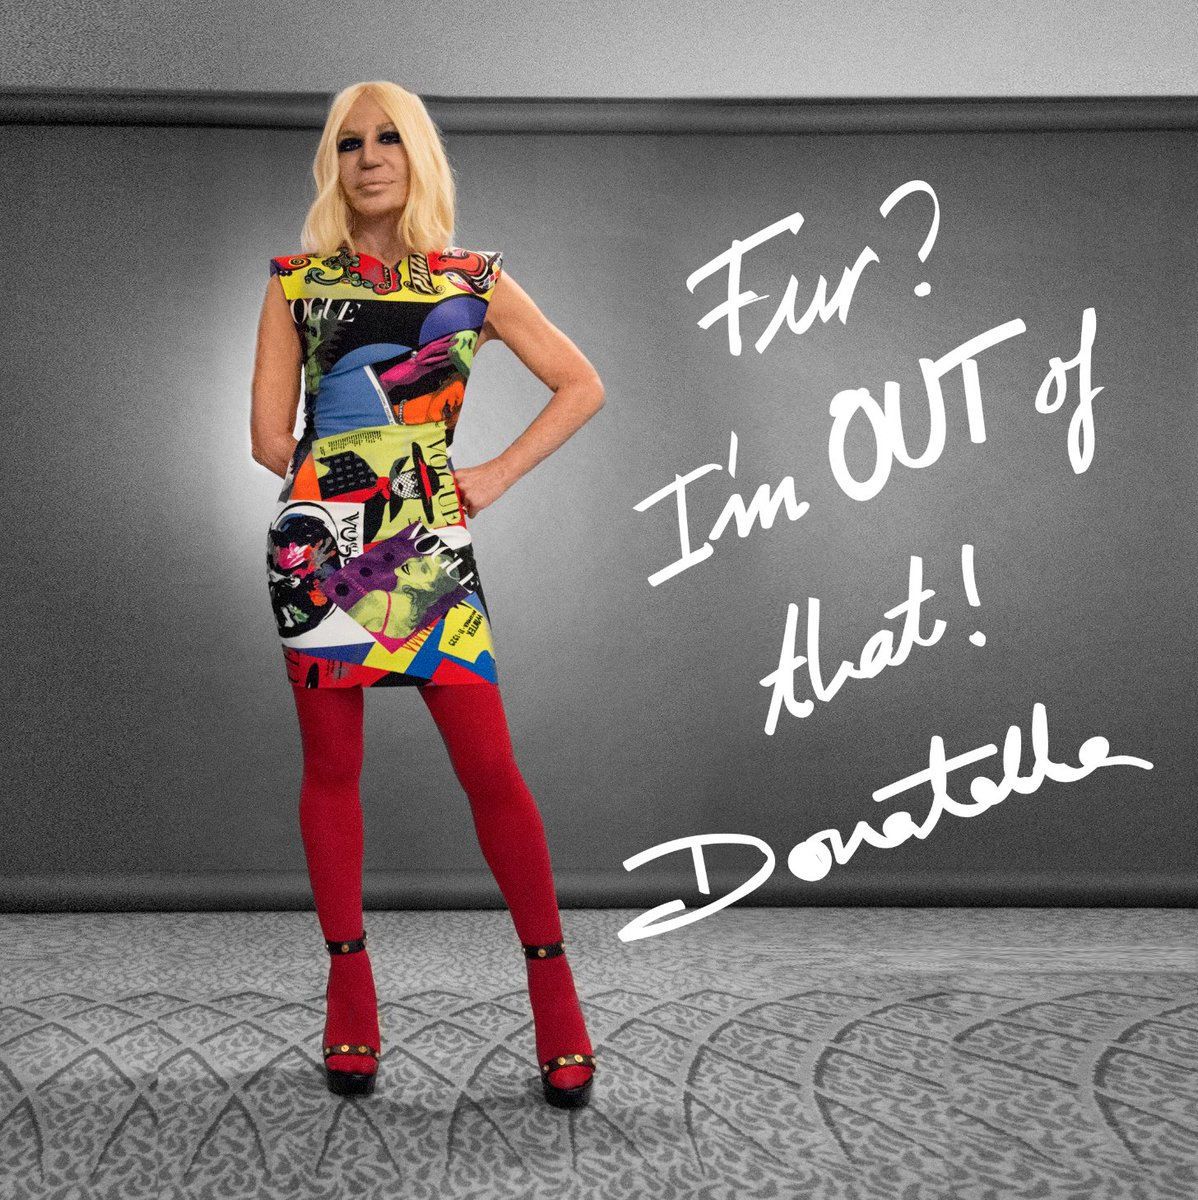 """Fur? I am out of that. I don't want to kill animals to make fashion."" #DonatellaVersace Versace is proud to take this ethical step into the future and hopes it will inspire innovation and raise awareness. Versace will phase out all fur products from the 2019 collections onward."